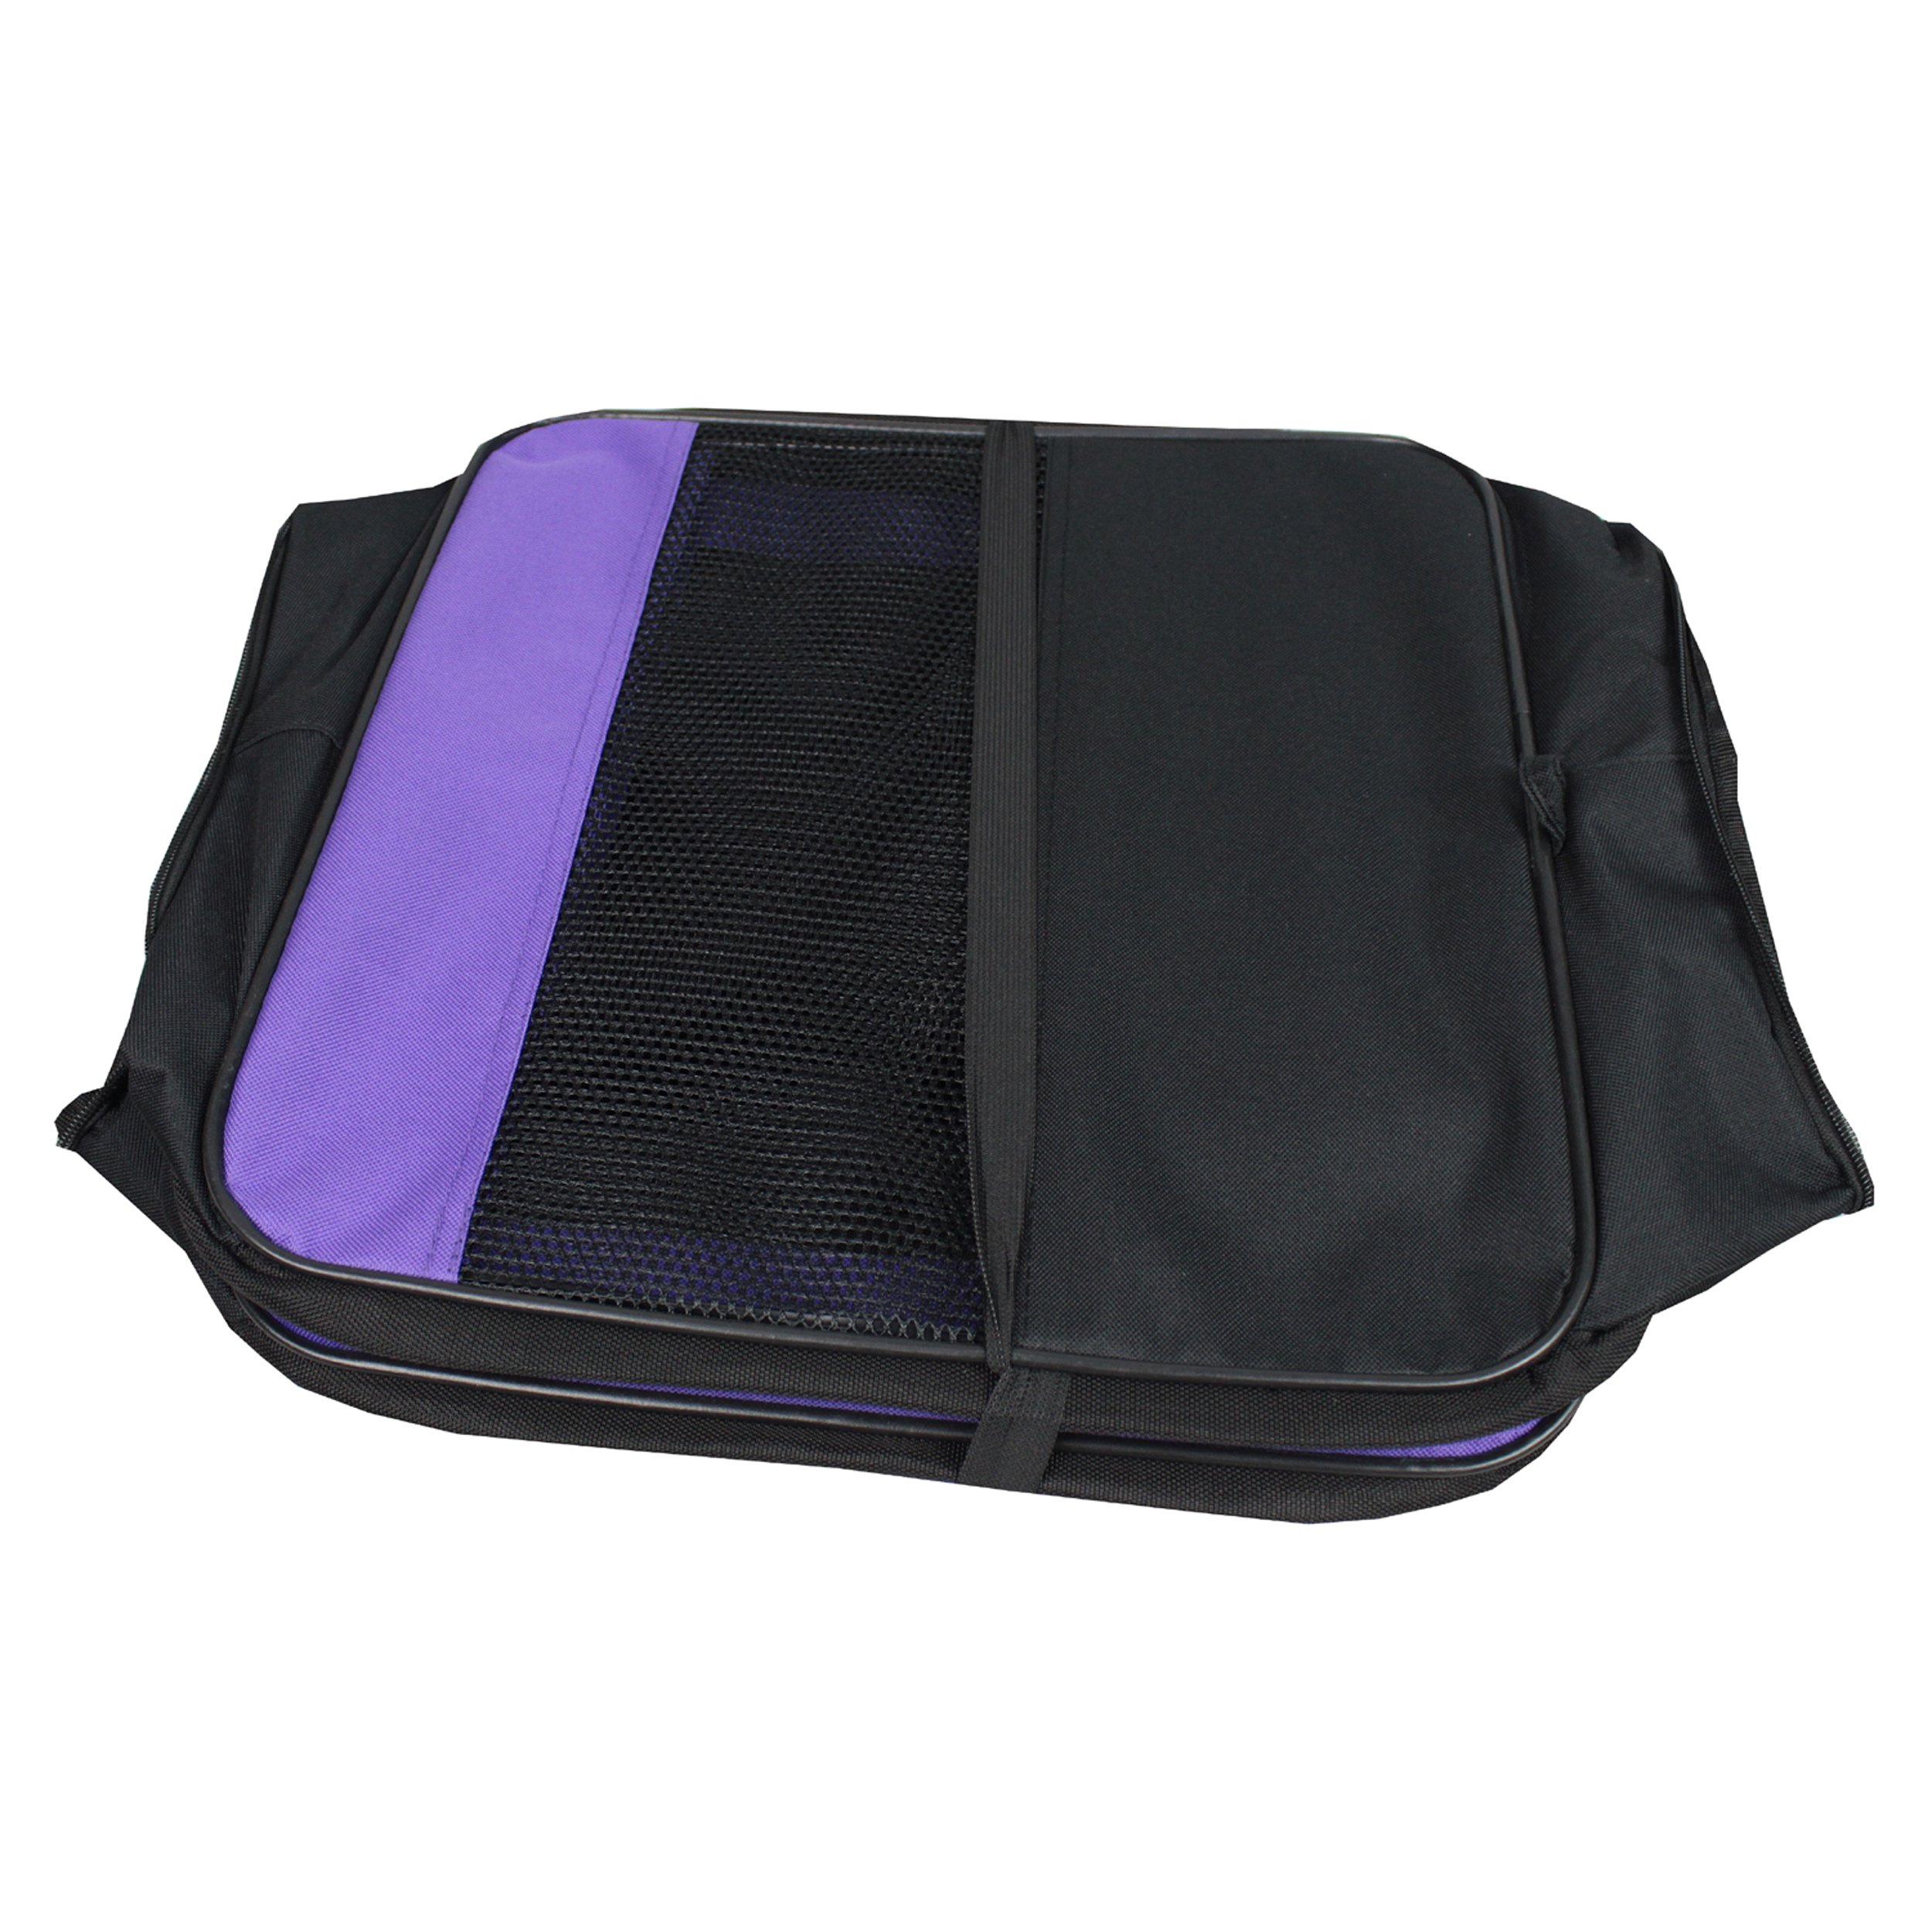 Iconic Pet Portable Pet Soft Play Pen, Purple, Small by Iconic Pet (Image #4)